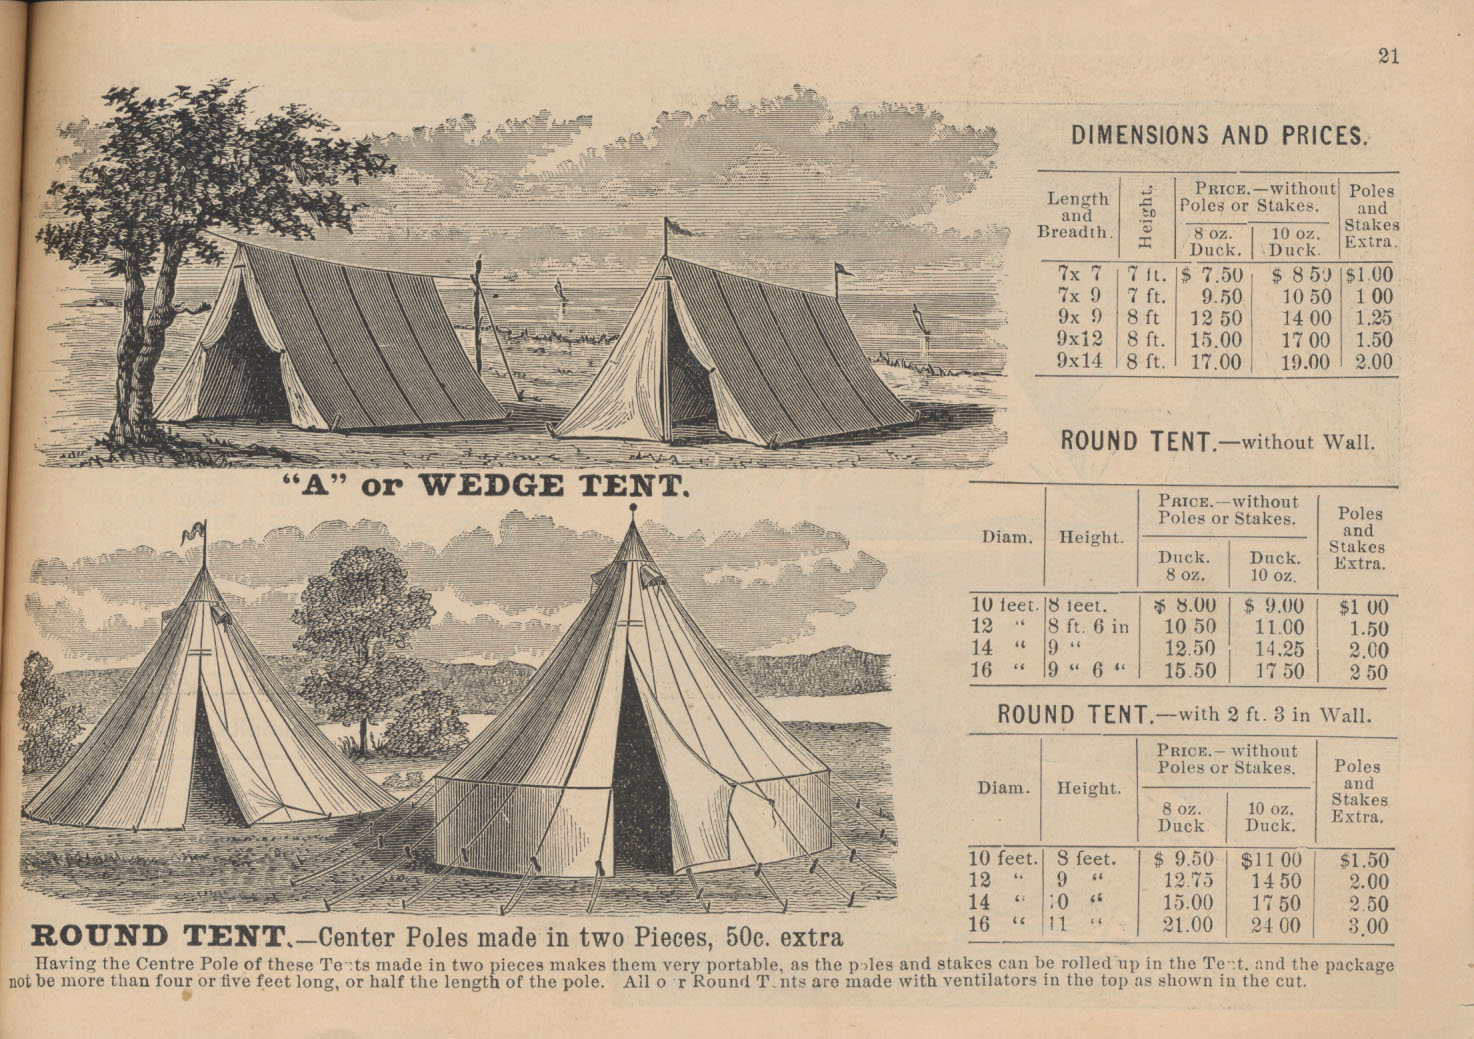 """Two """"A"""" or Wedge Tents, one with door fully drawn open and another with door halfway drawn open and Two Round Tents, one with a wall and one without a wall"""